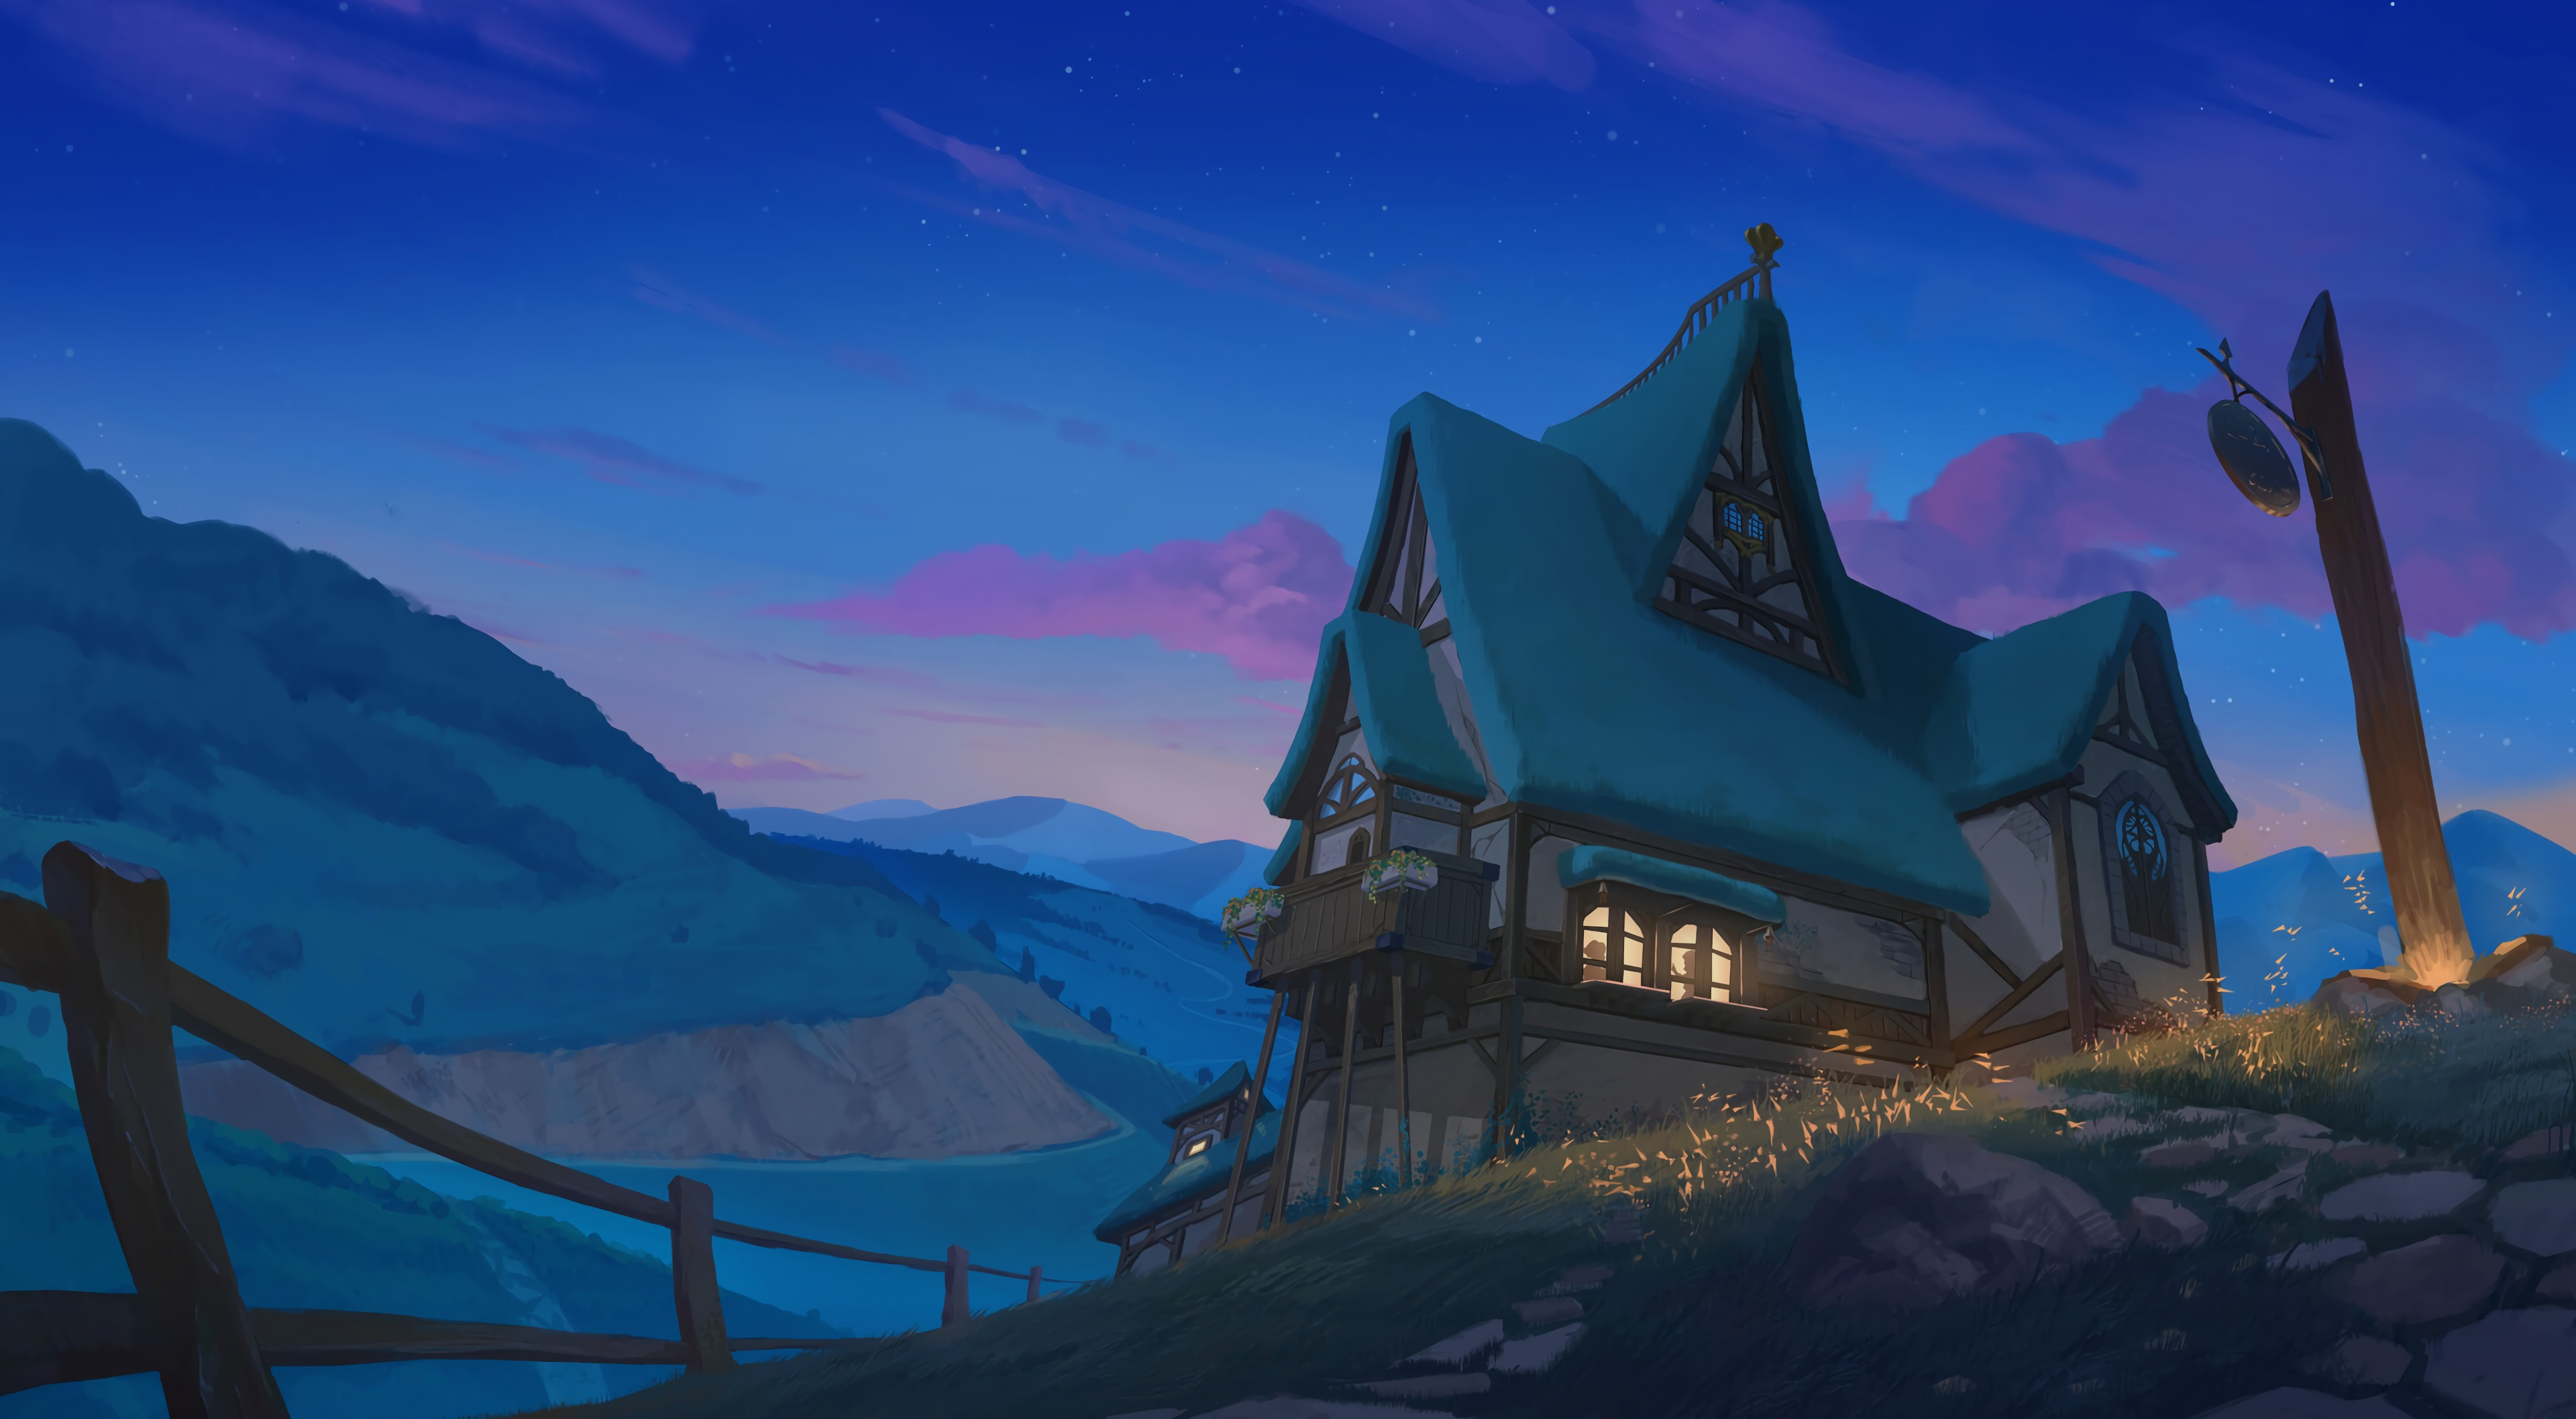 143665 download wallpaper Night, Rivers, Art, Mountains, House screensavers and pictures for free